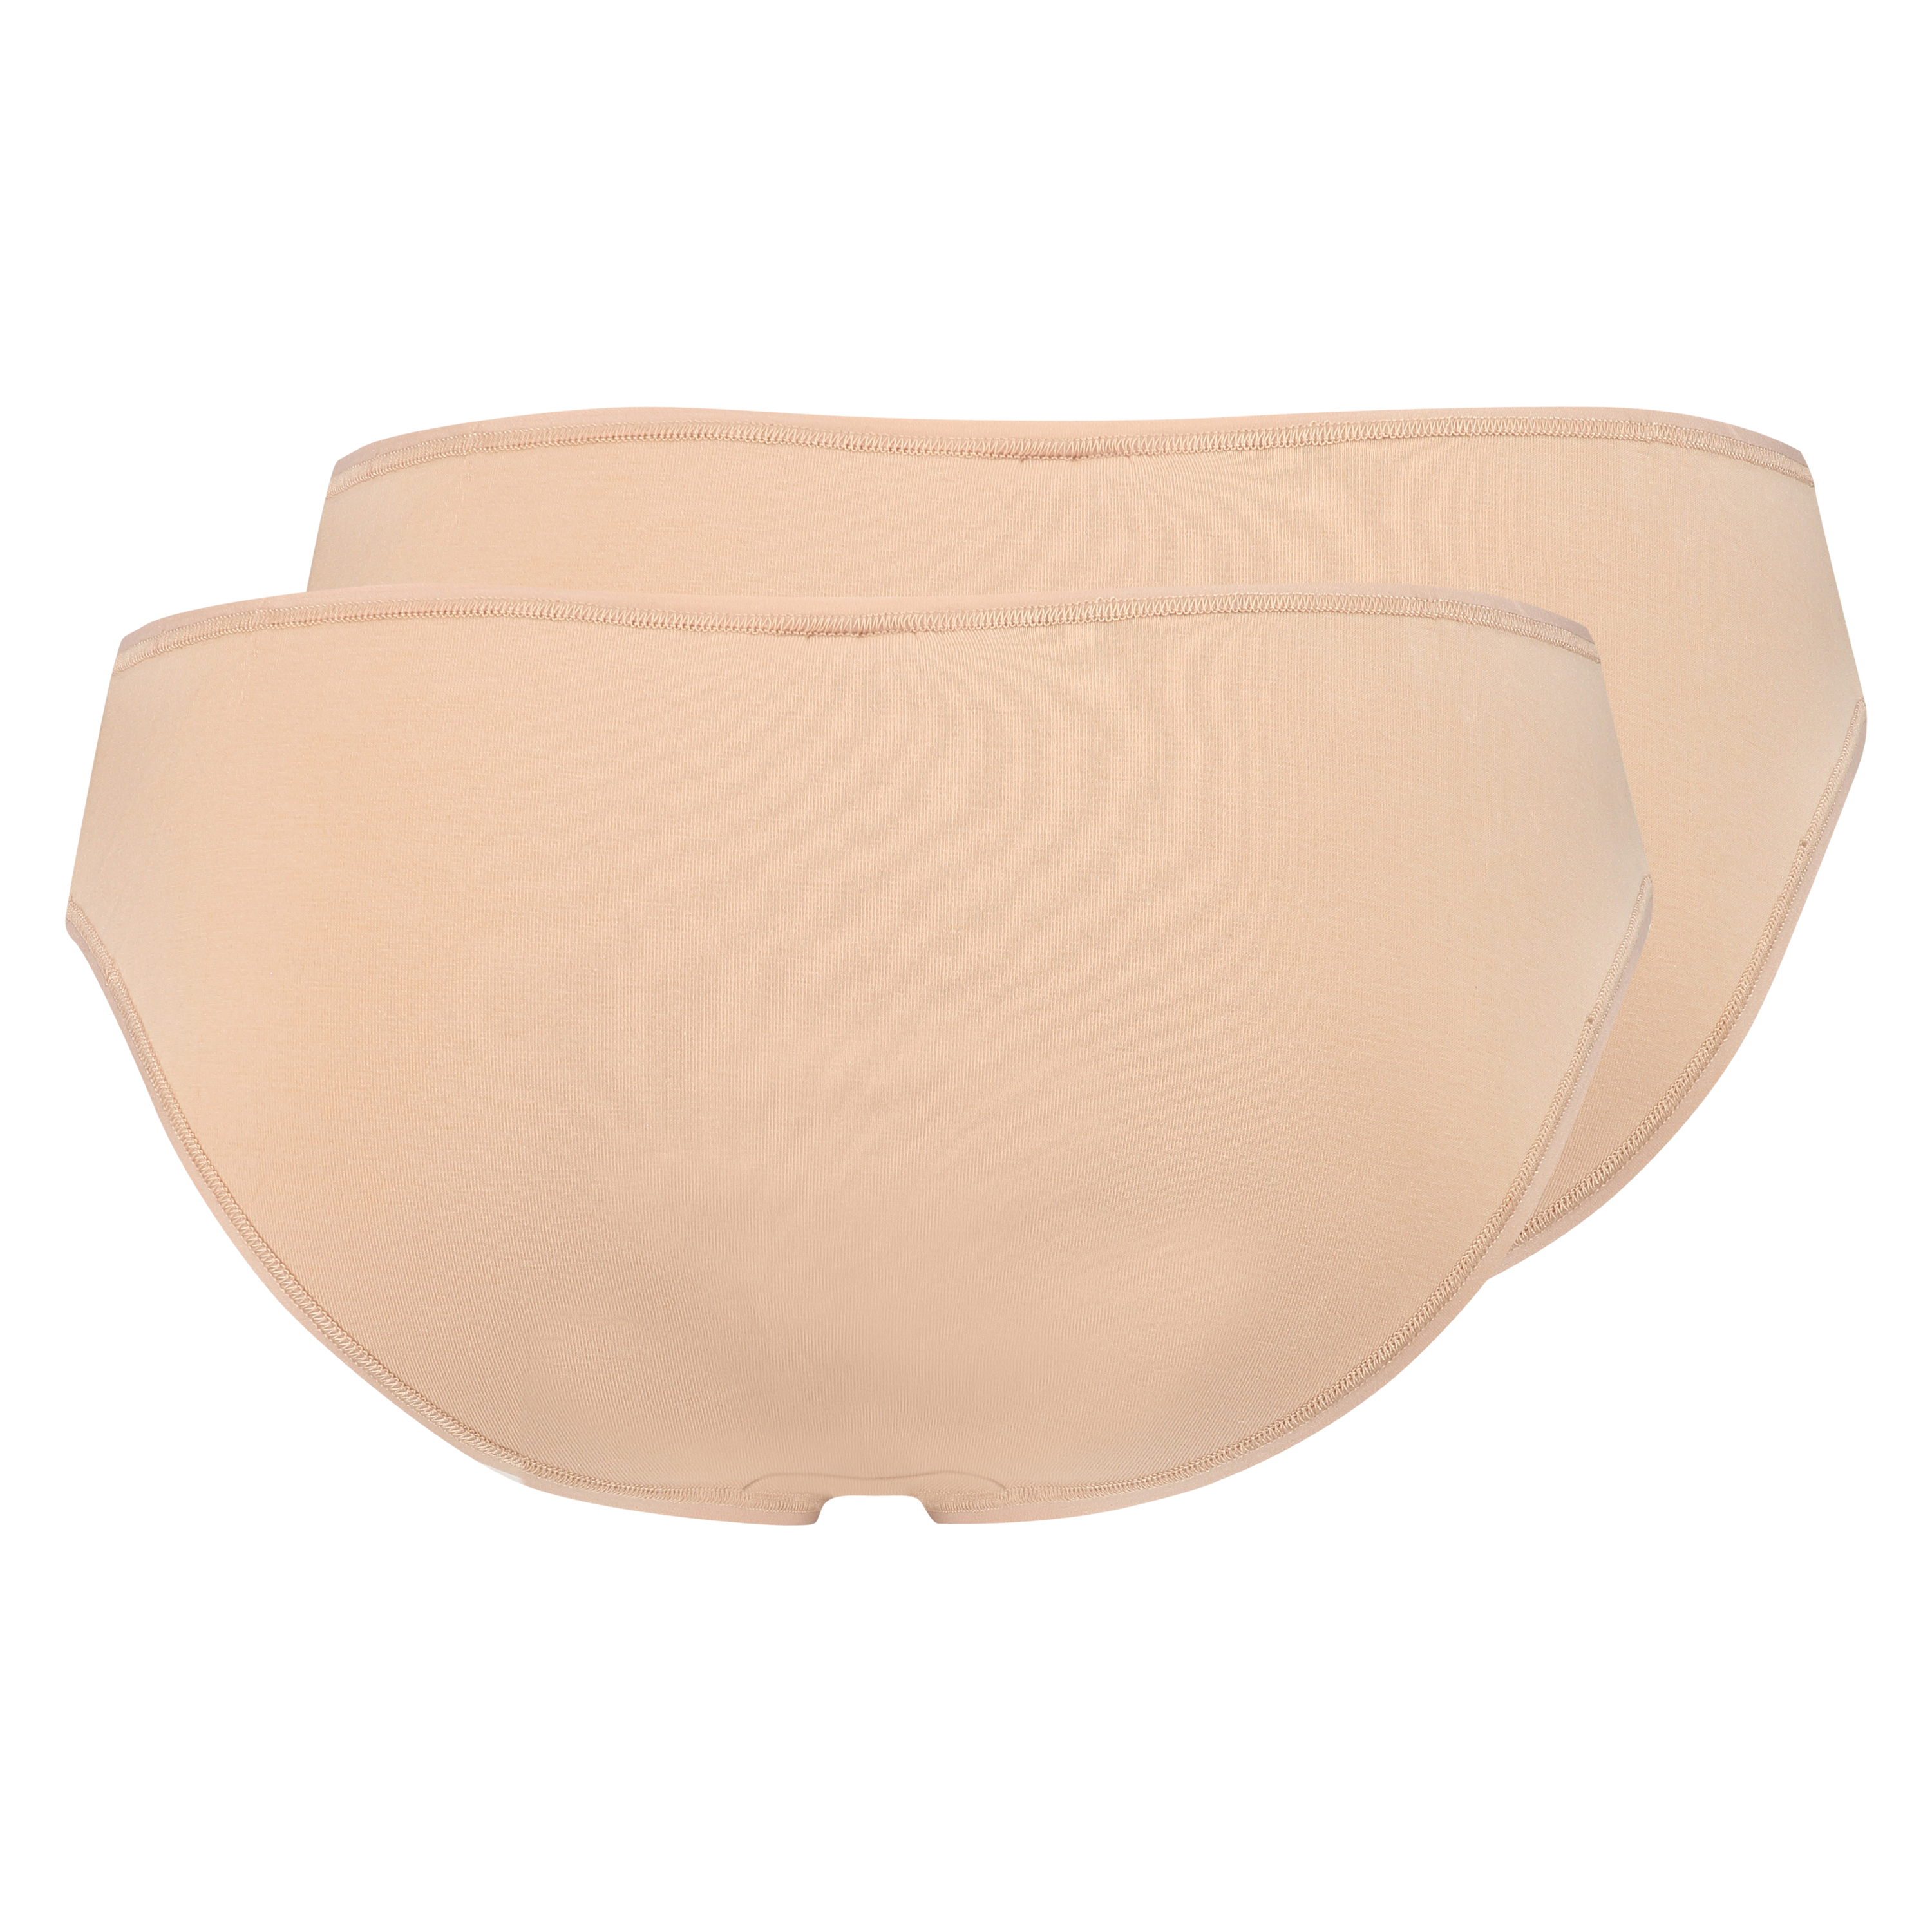 Pakke med 2 stk. Kim trusser Cotton, tan, main